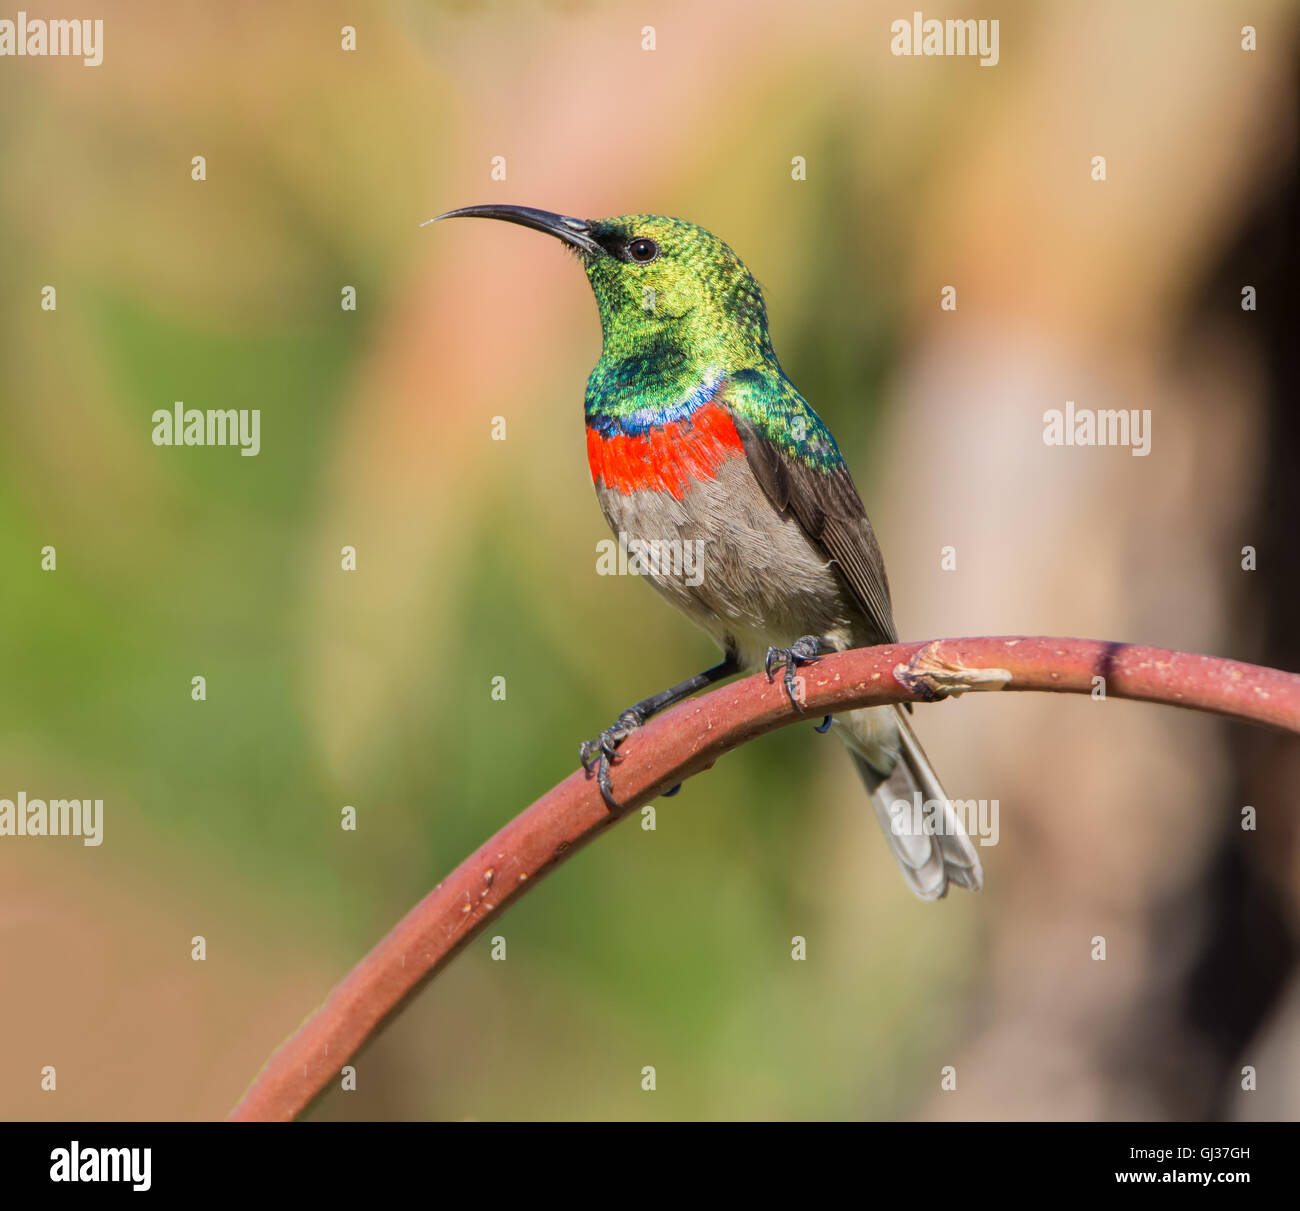 A male Southern Double-collared Sunbird perched on an aloe plant branch in Southern Africa - Stock Image